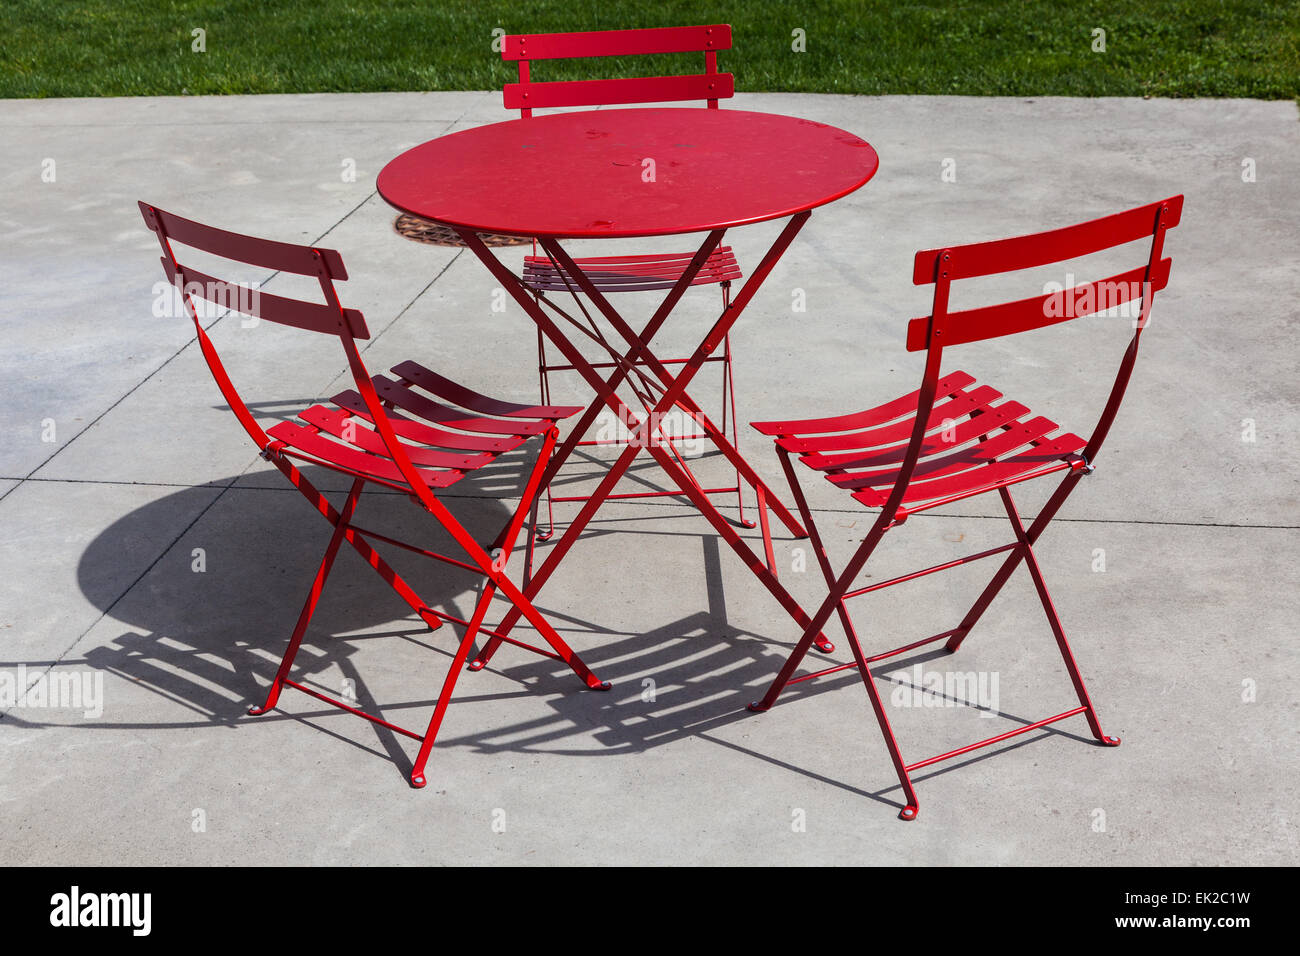 Miraculous Red Folding Patio Chairs And Table On A Concrete Surface Gmtry Best Dining Table And Chair Ideas Images Gmtryco